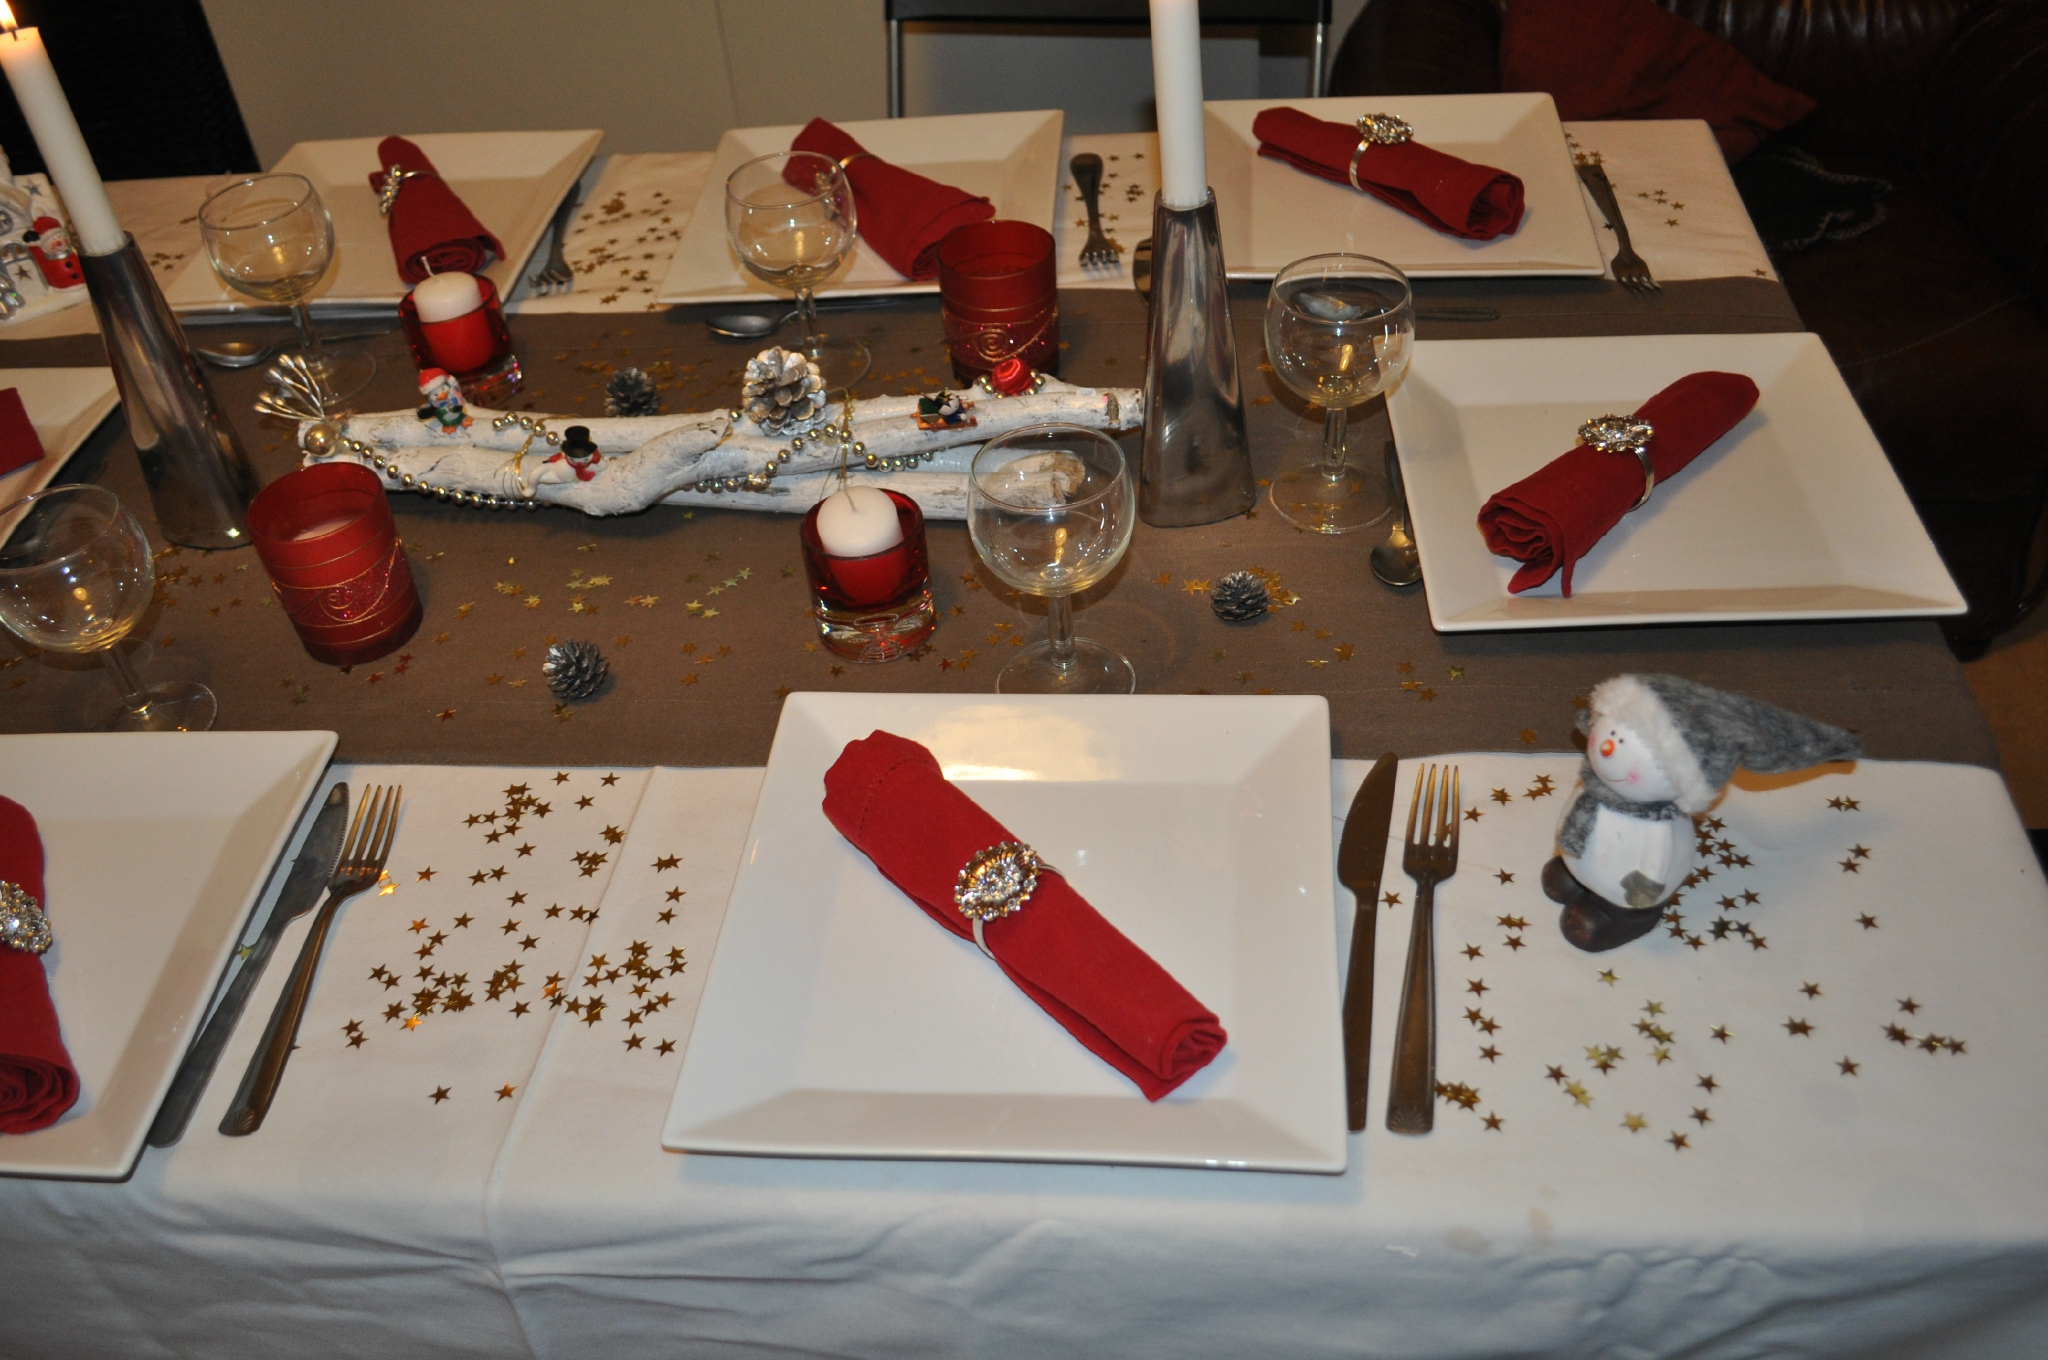 Decoration de table nouvel an 2013 la cuisine de christelle - Deco table reveillon nouvel an ...